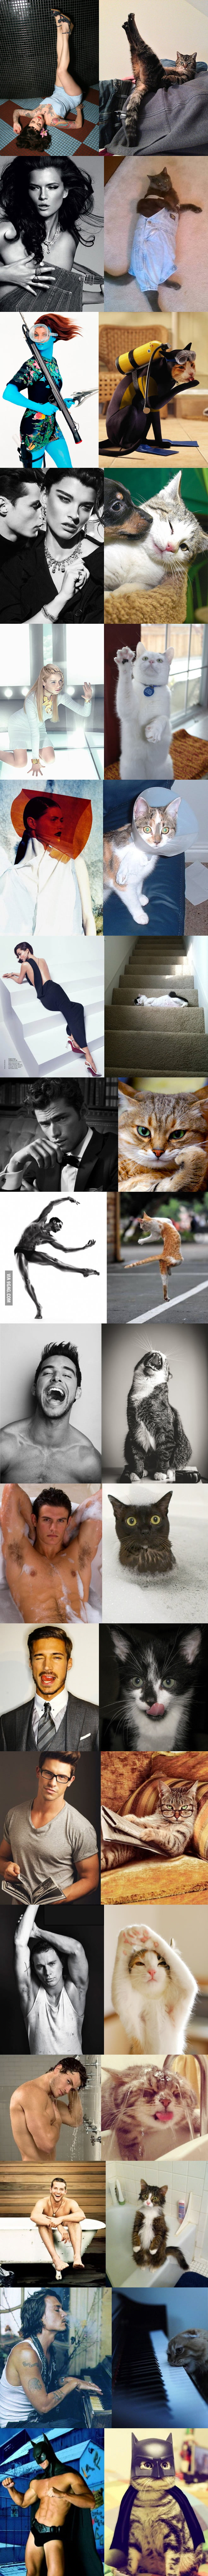 Modeling Poses Acted Out By Cats